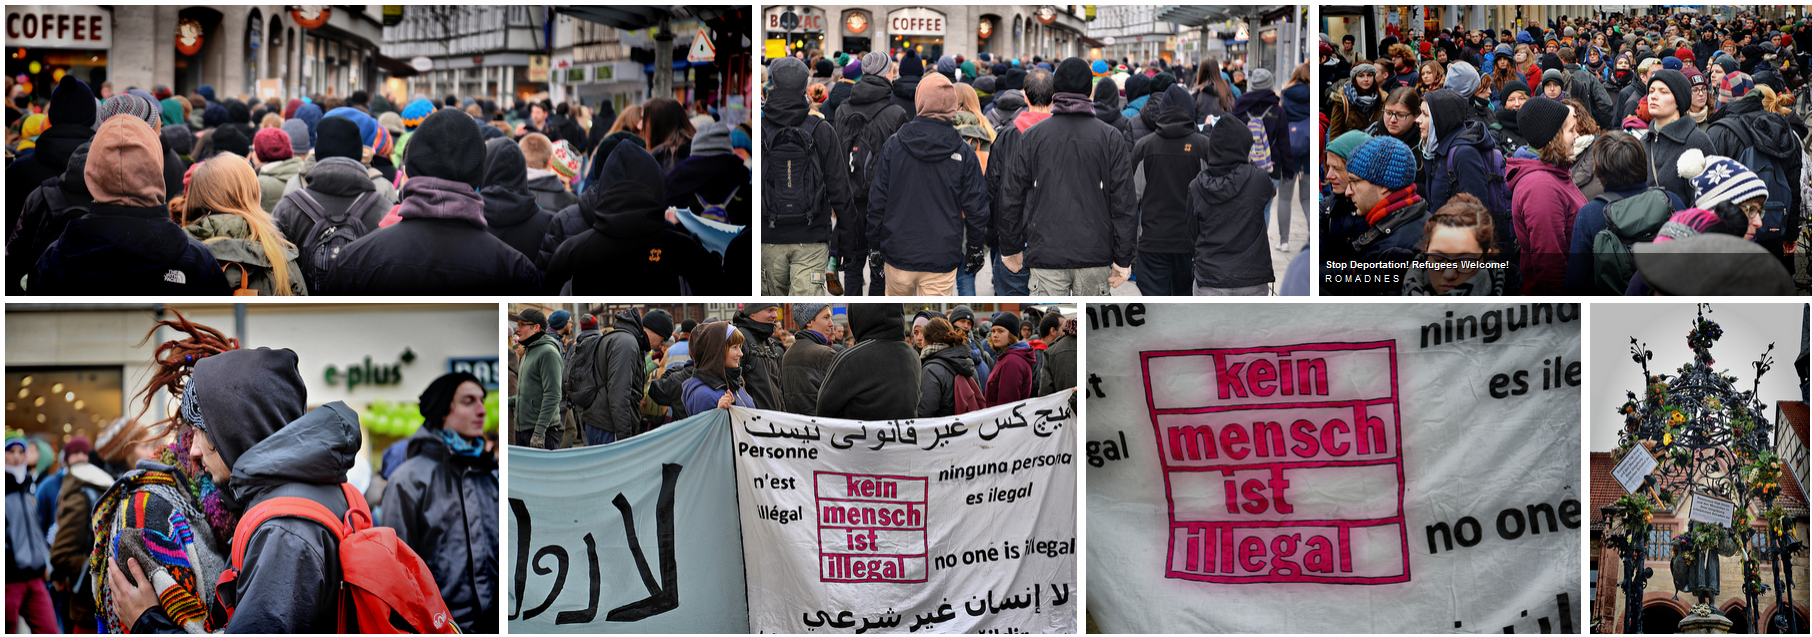 2015-02-07 18_20_44-Refugees Welcome!Demo Göttingen 07.02.2015 – ein Album auf Flickr